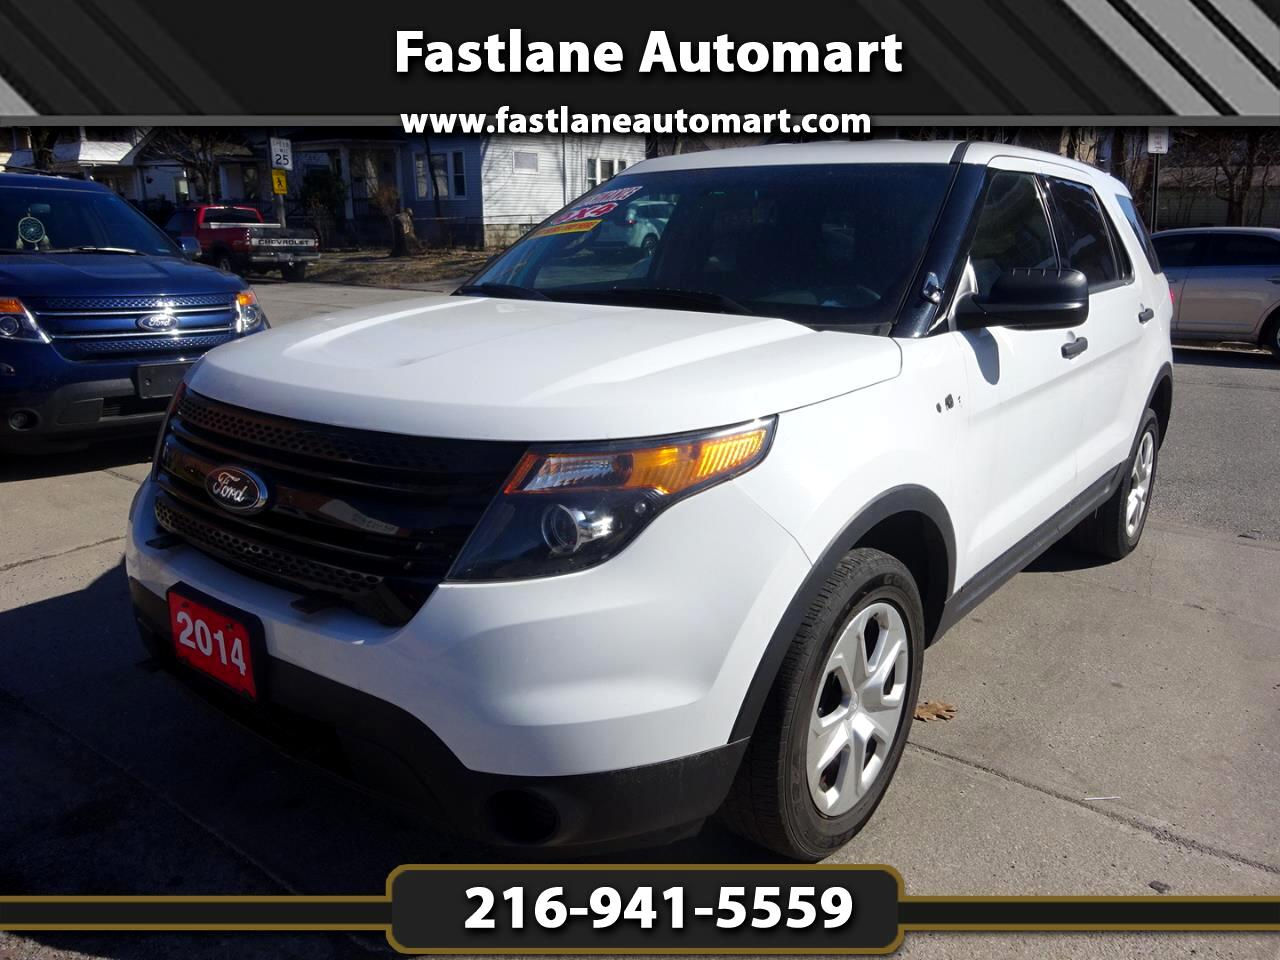 2014 Ford Explorer AWD 4dr